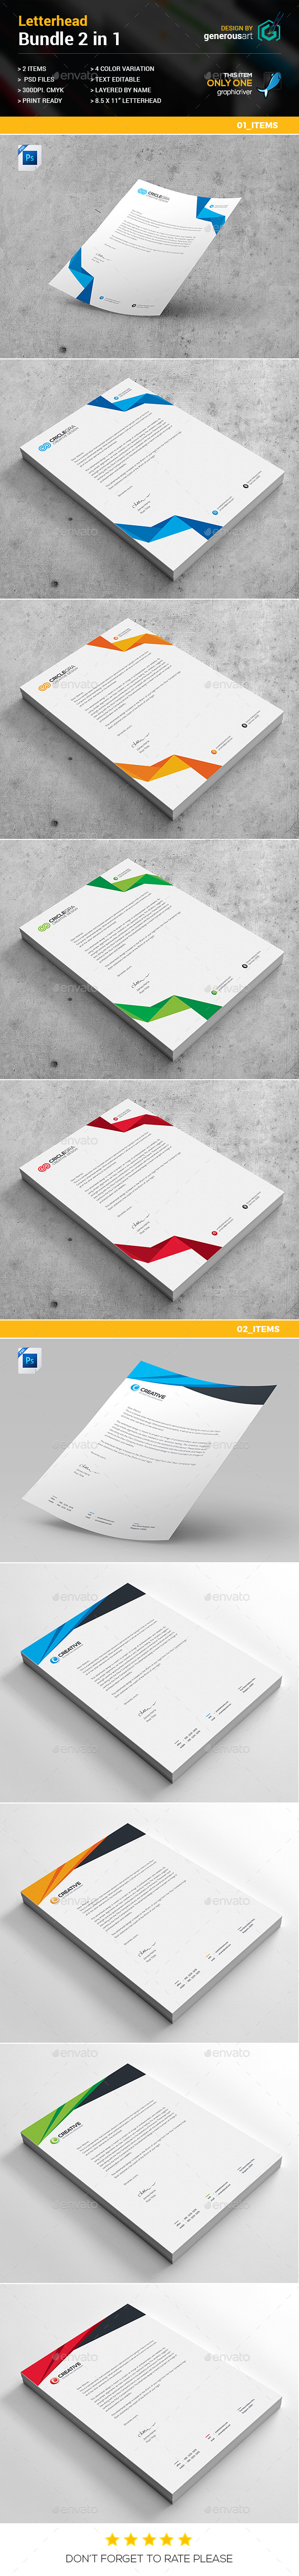 Letterhead Bundle 2 in 1 - Stationery Print Templates